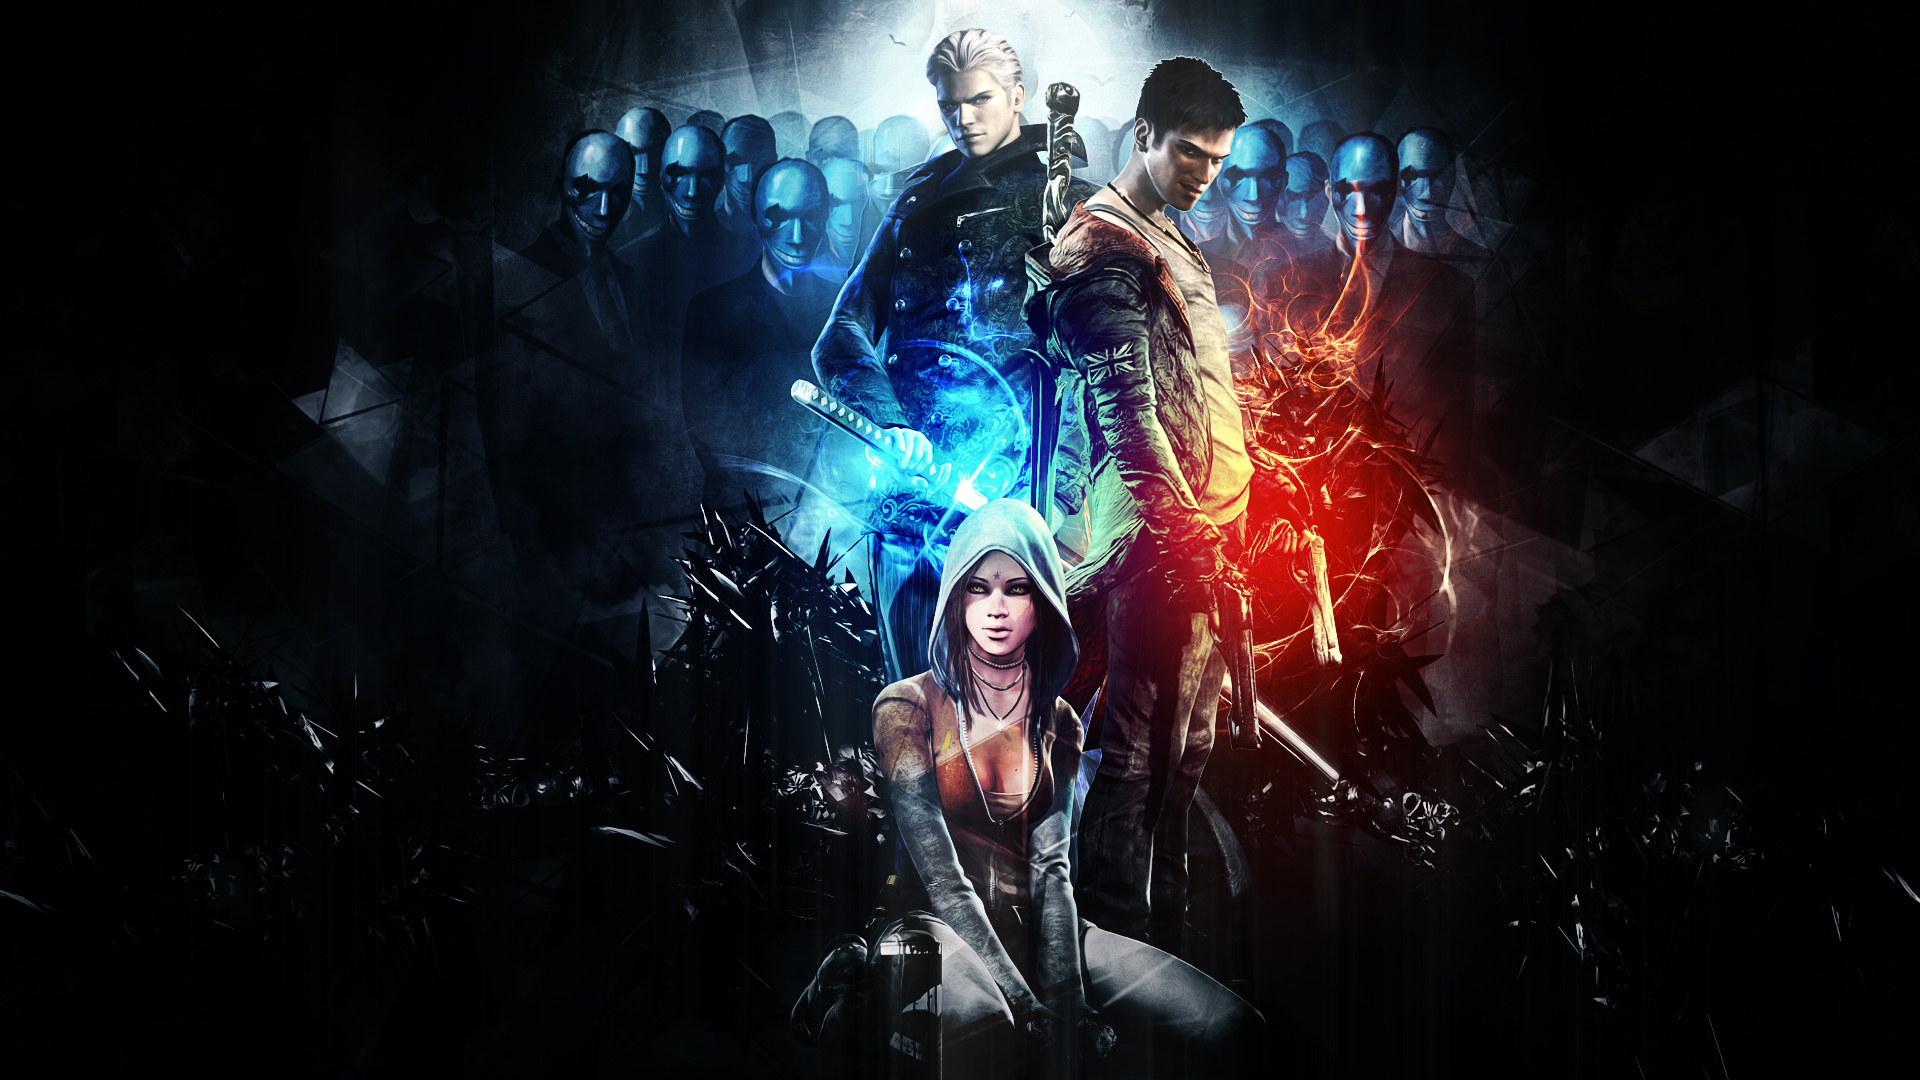 Devil May Cry Wallpapers, Pictures, Images